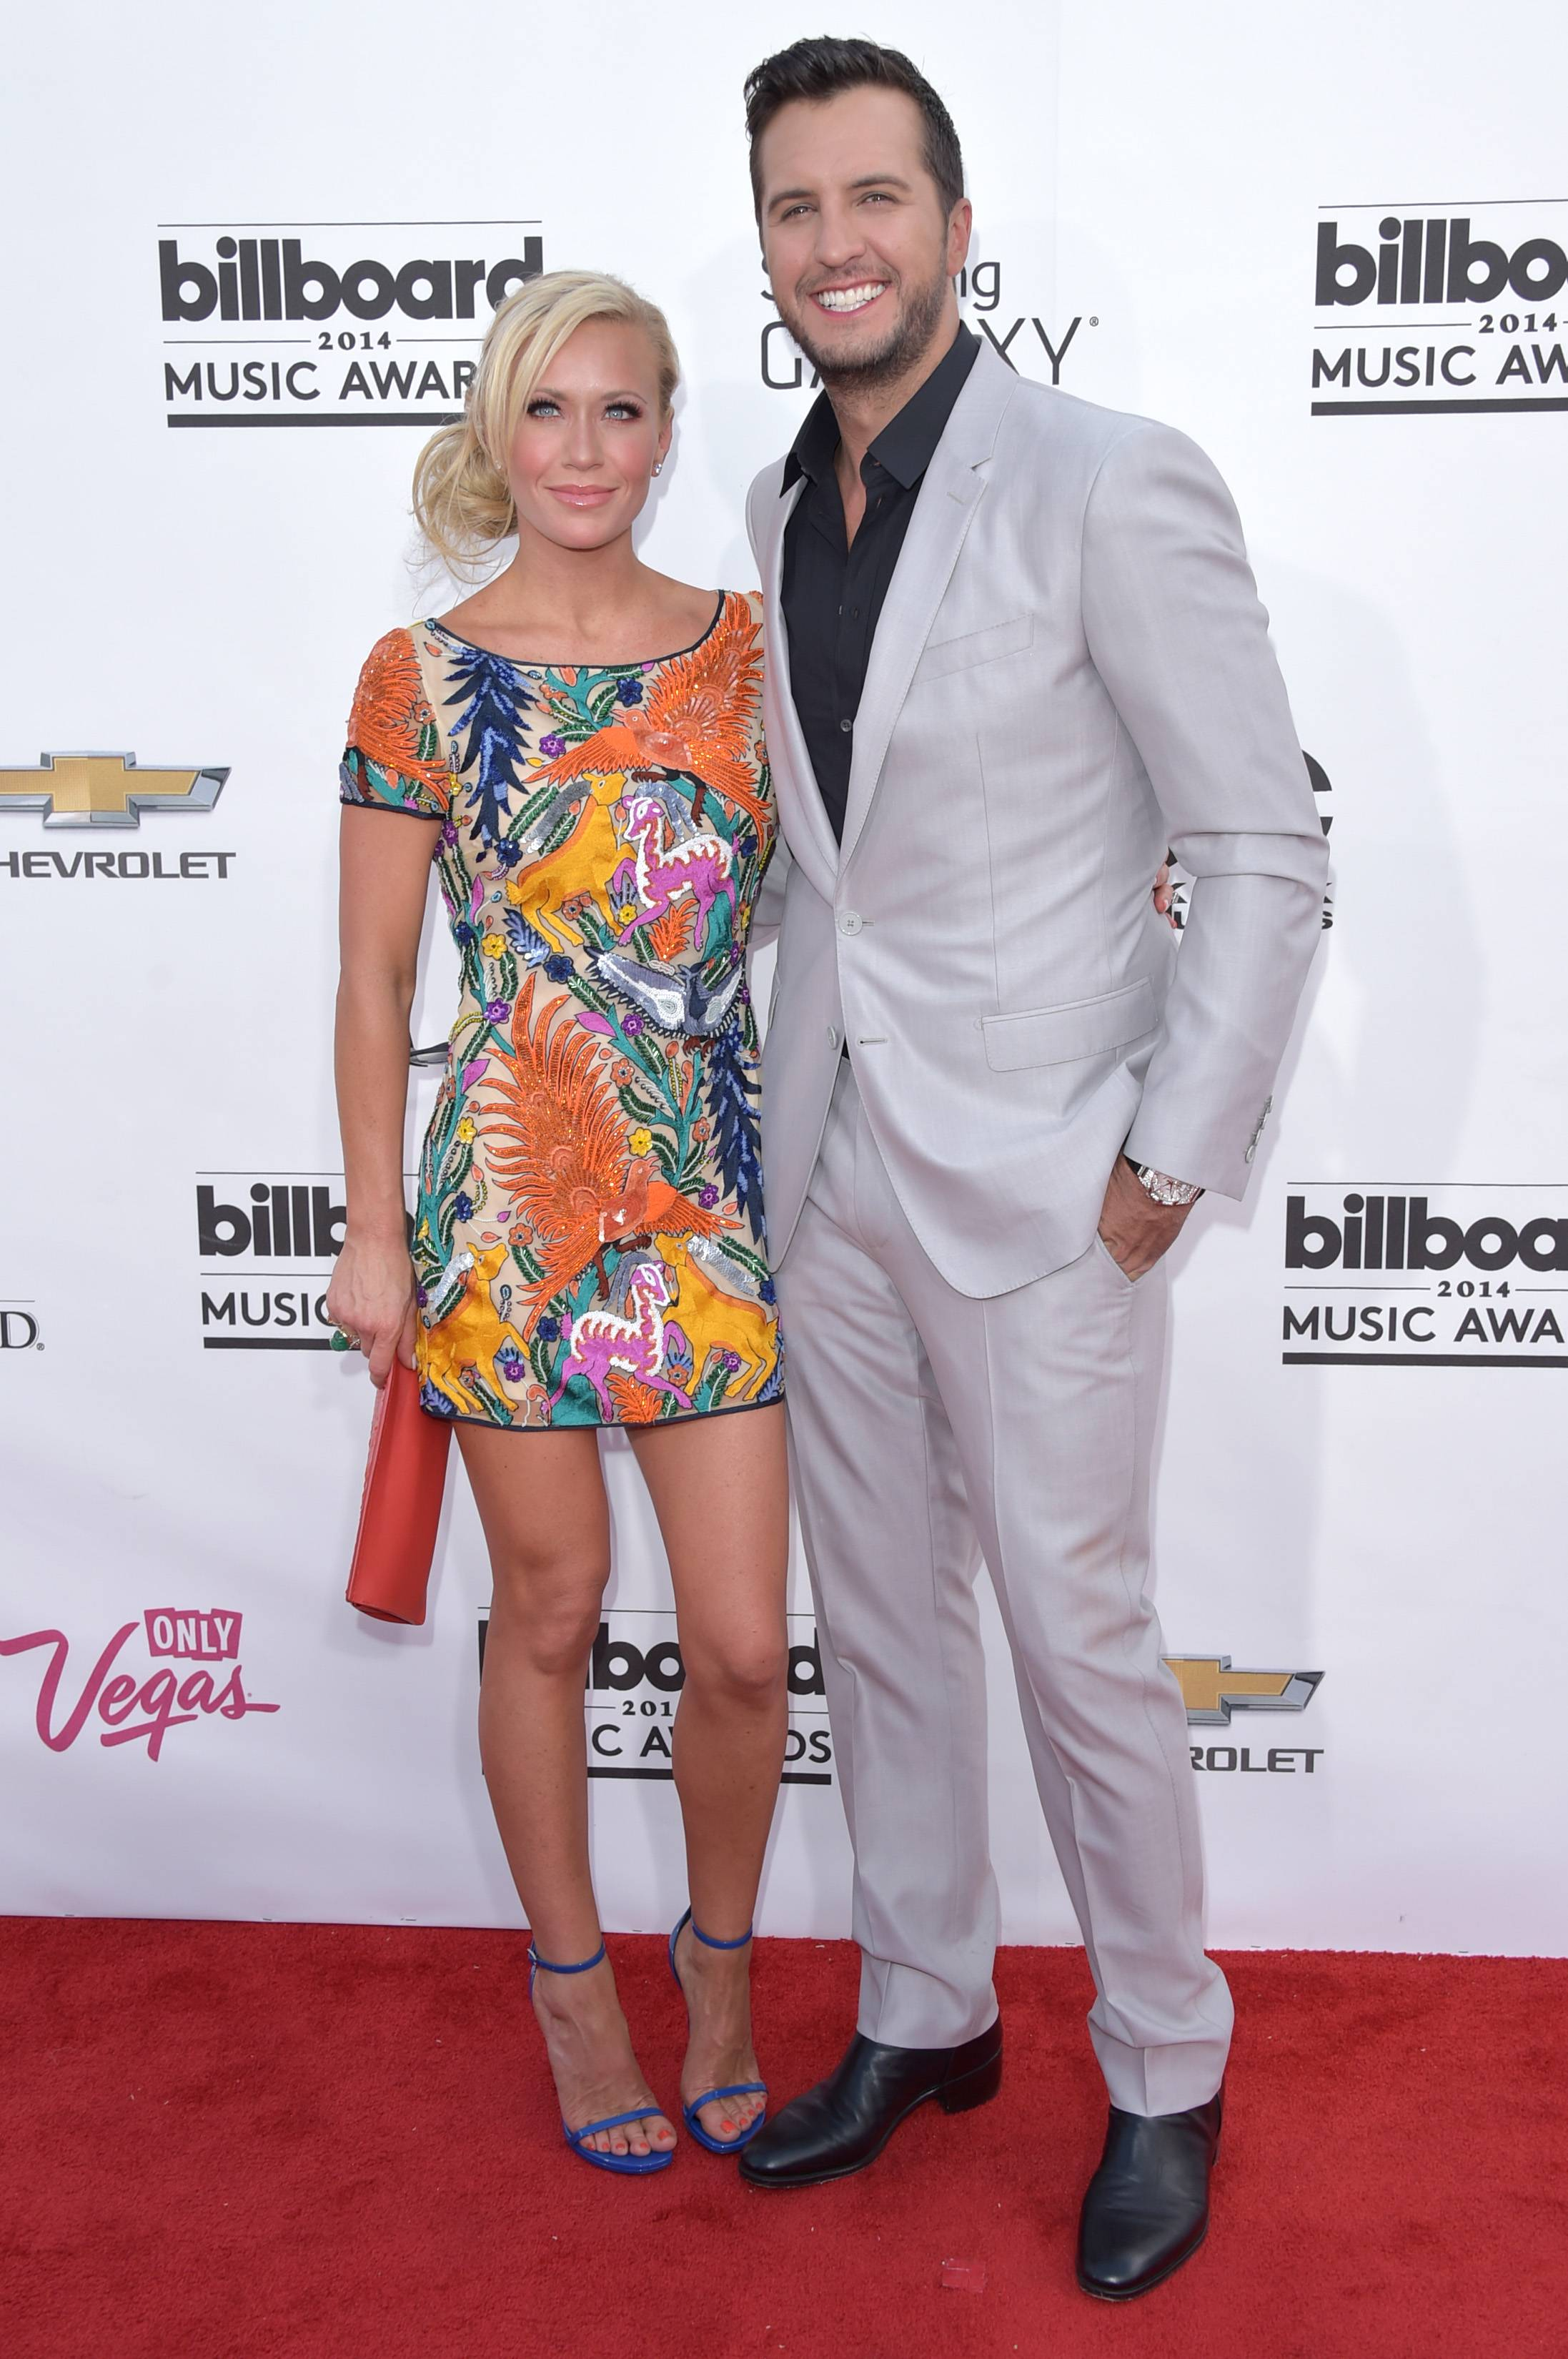 Caroline Boyer, left, and Luke Bryan arrive at the Billboard Music Awards at the MGM Grand Garden Arena on Sunday, May 18, 2014, in Las Vegas.